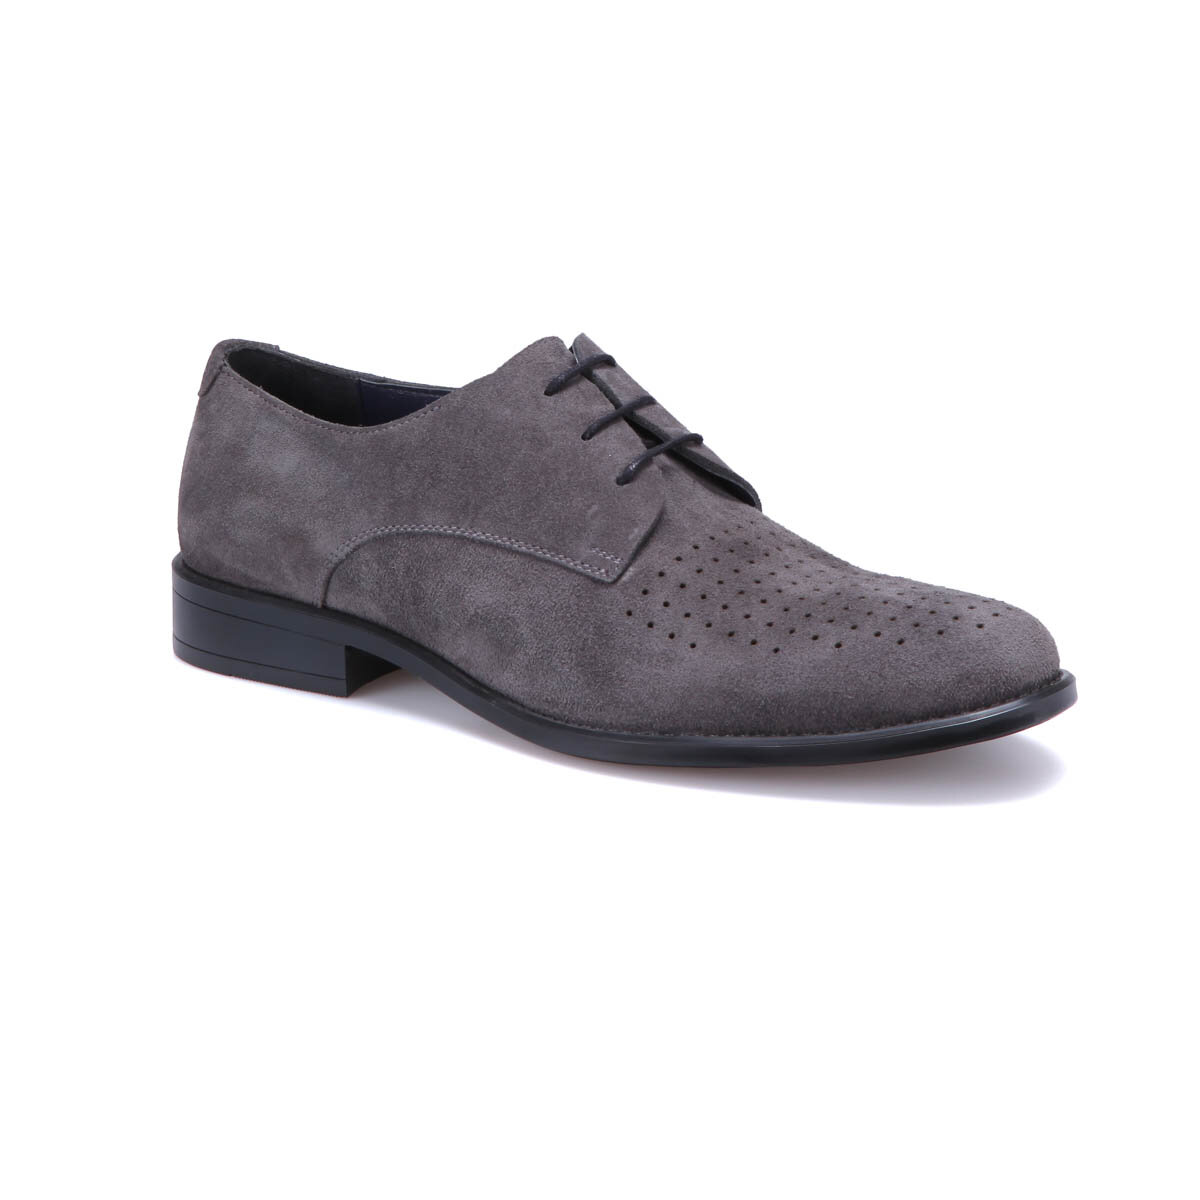 FLO 6935 M 1559 Gray Men 'S Classic Shoes Garamond